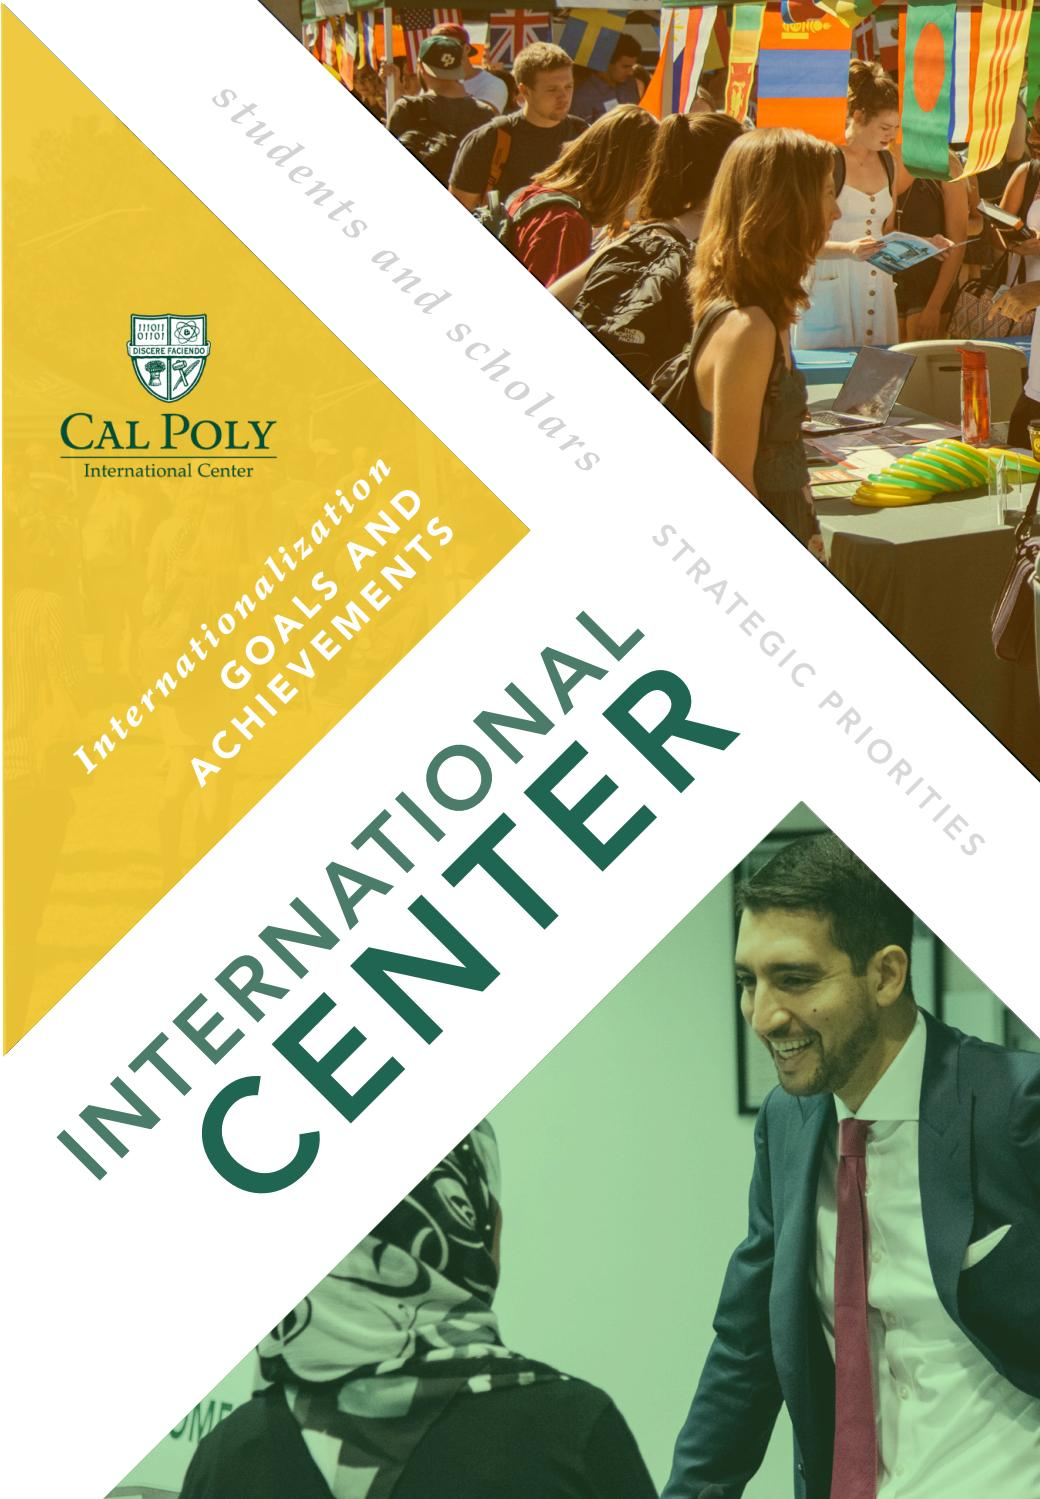 Cal Poly Academic Calendar 2022.Cal Poly International Center Stats By California Polytechnic State University Issuu